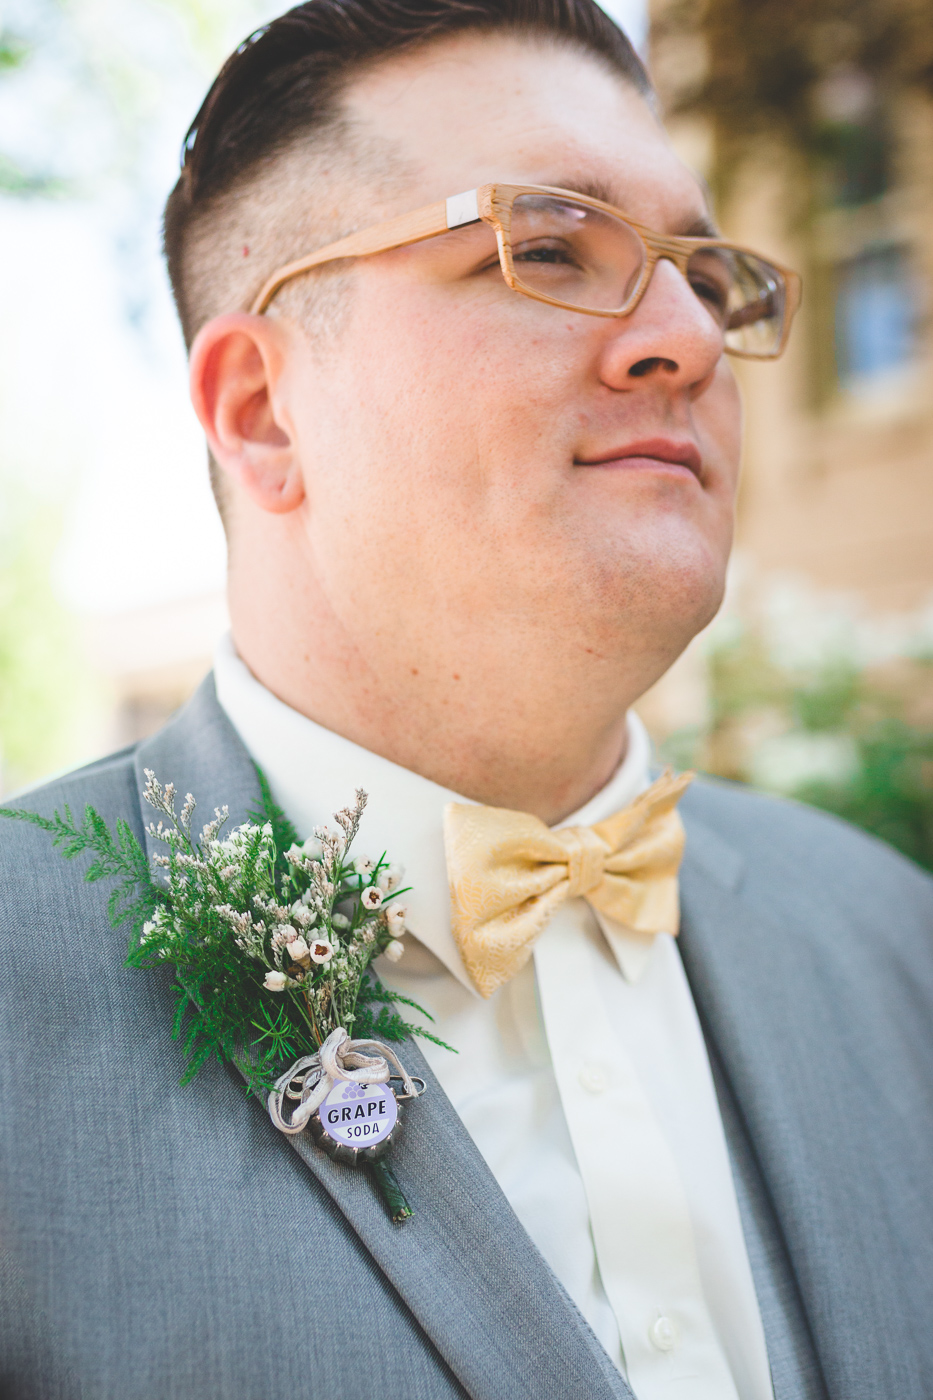 up grape soda boutonniere